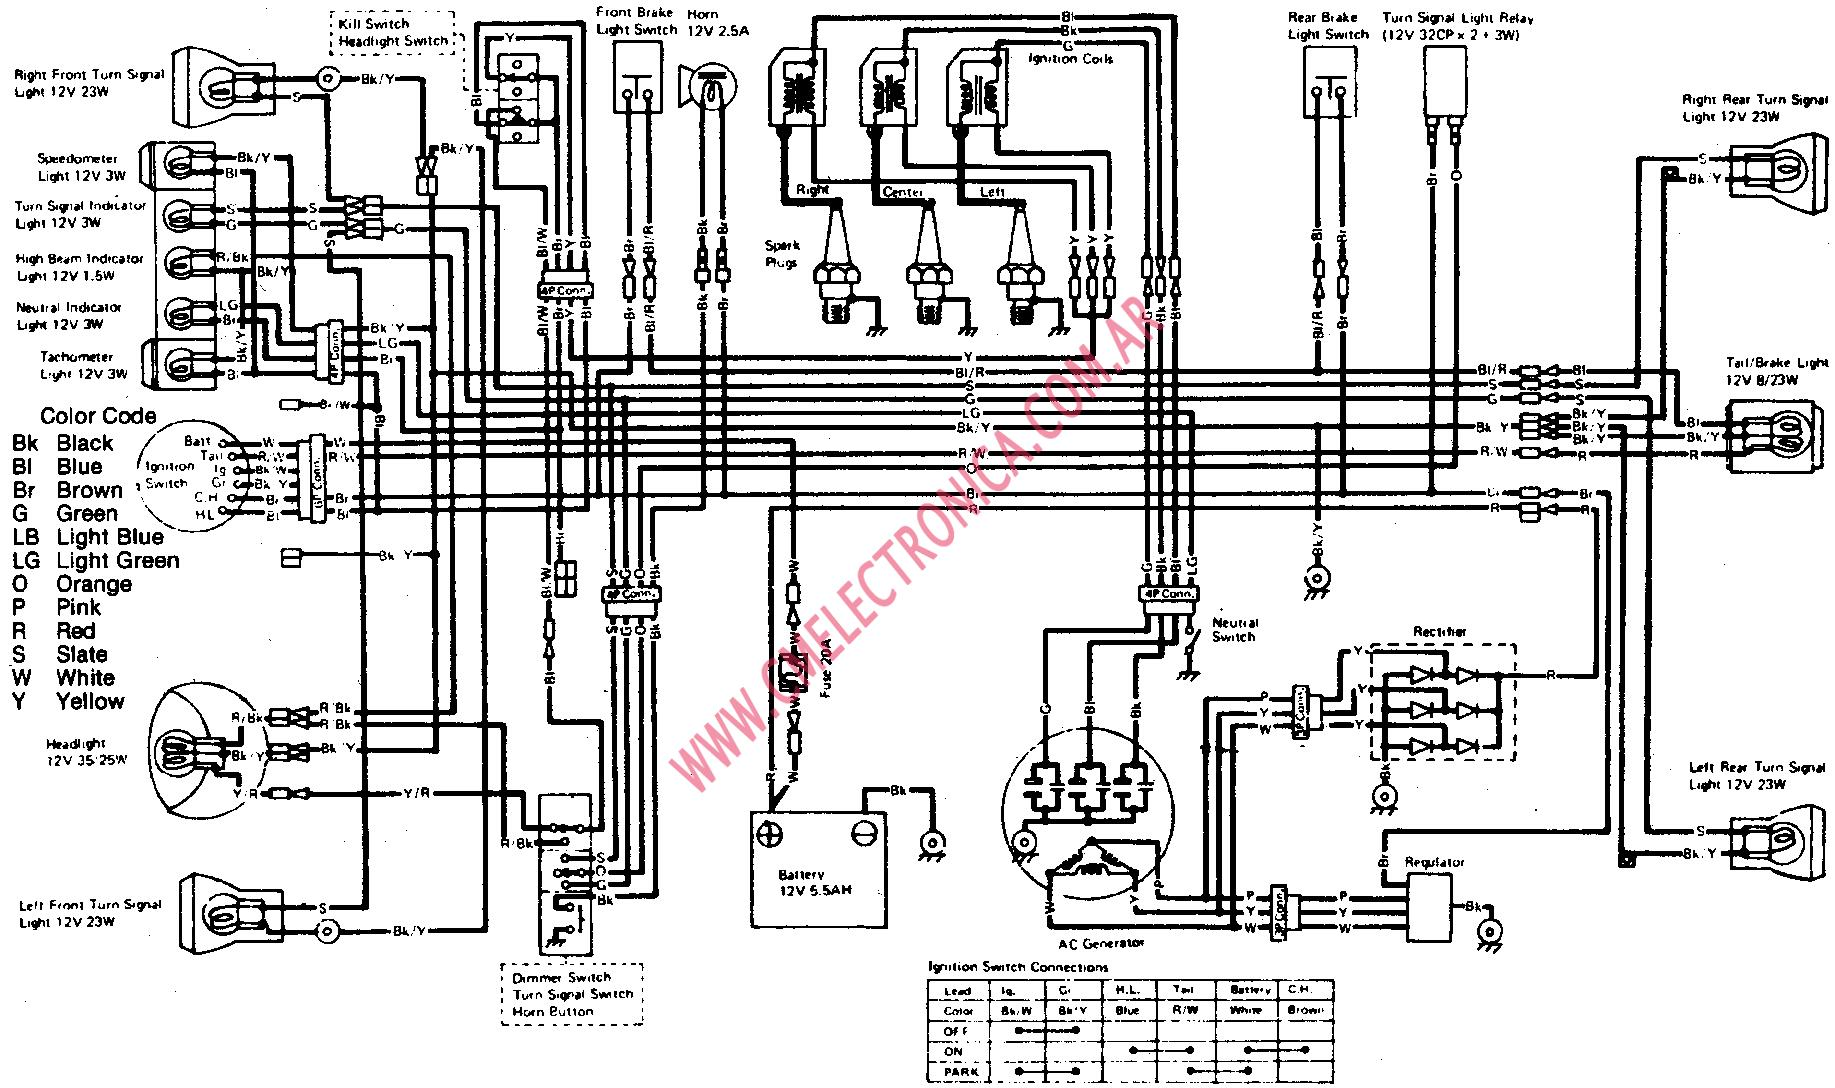 [DIAGRAM_5FD]  3B4D72 Kawasaki Brute Force Wiring Diagram | Wiring Library | 2006 Kawasaki Brute Force Wiring Diagram |  | Wiring Library